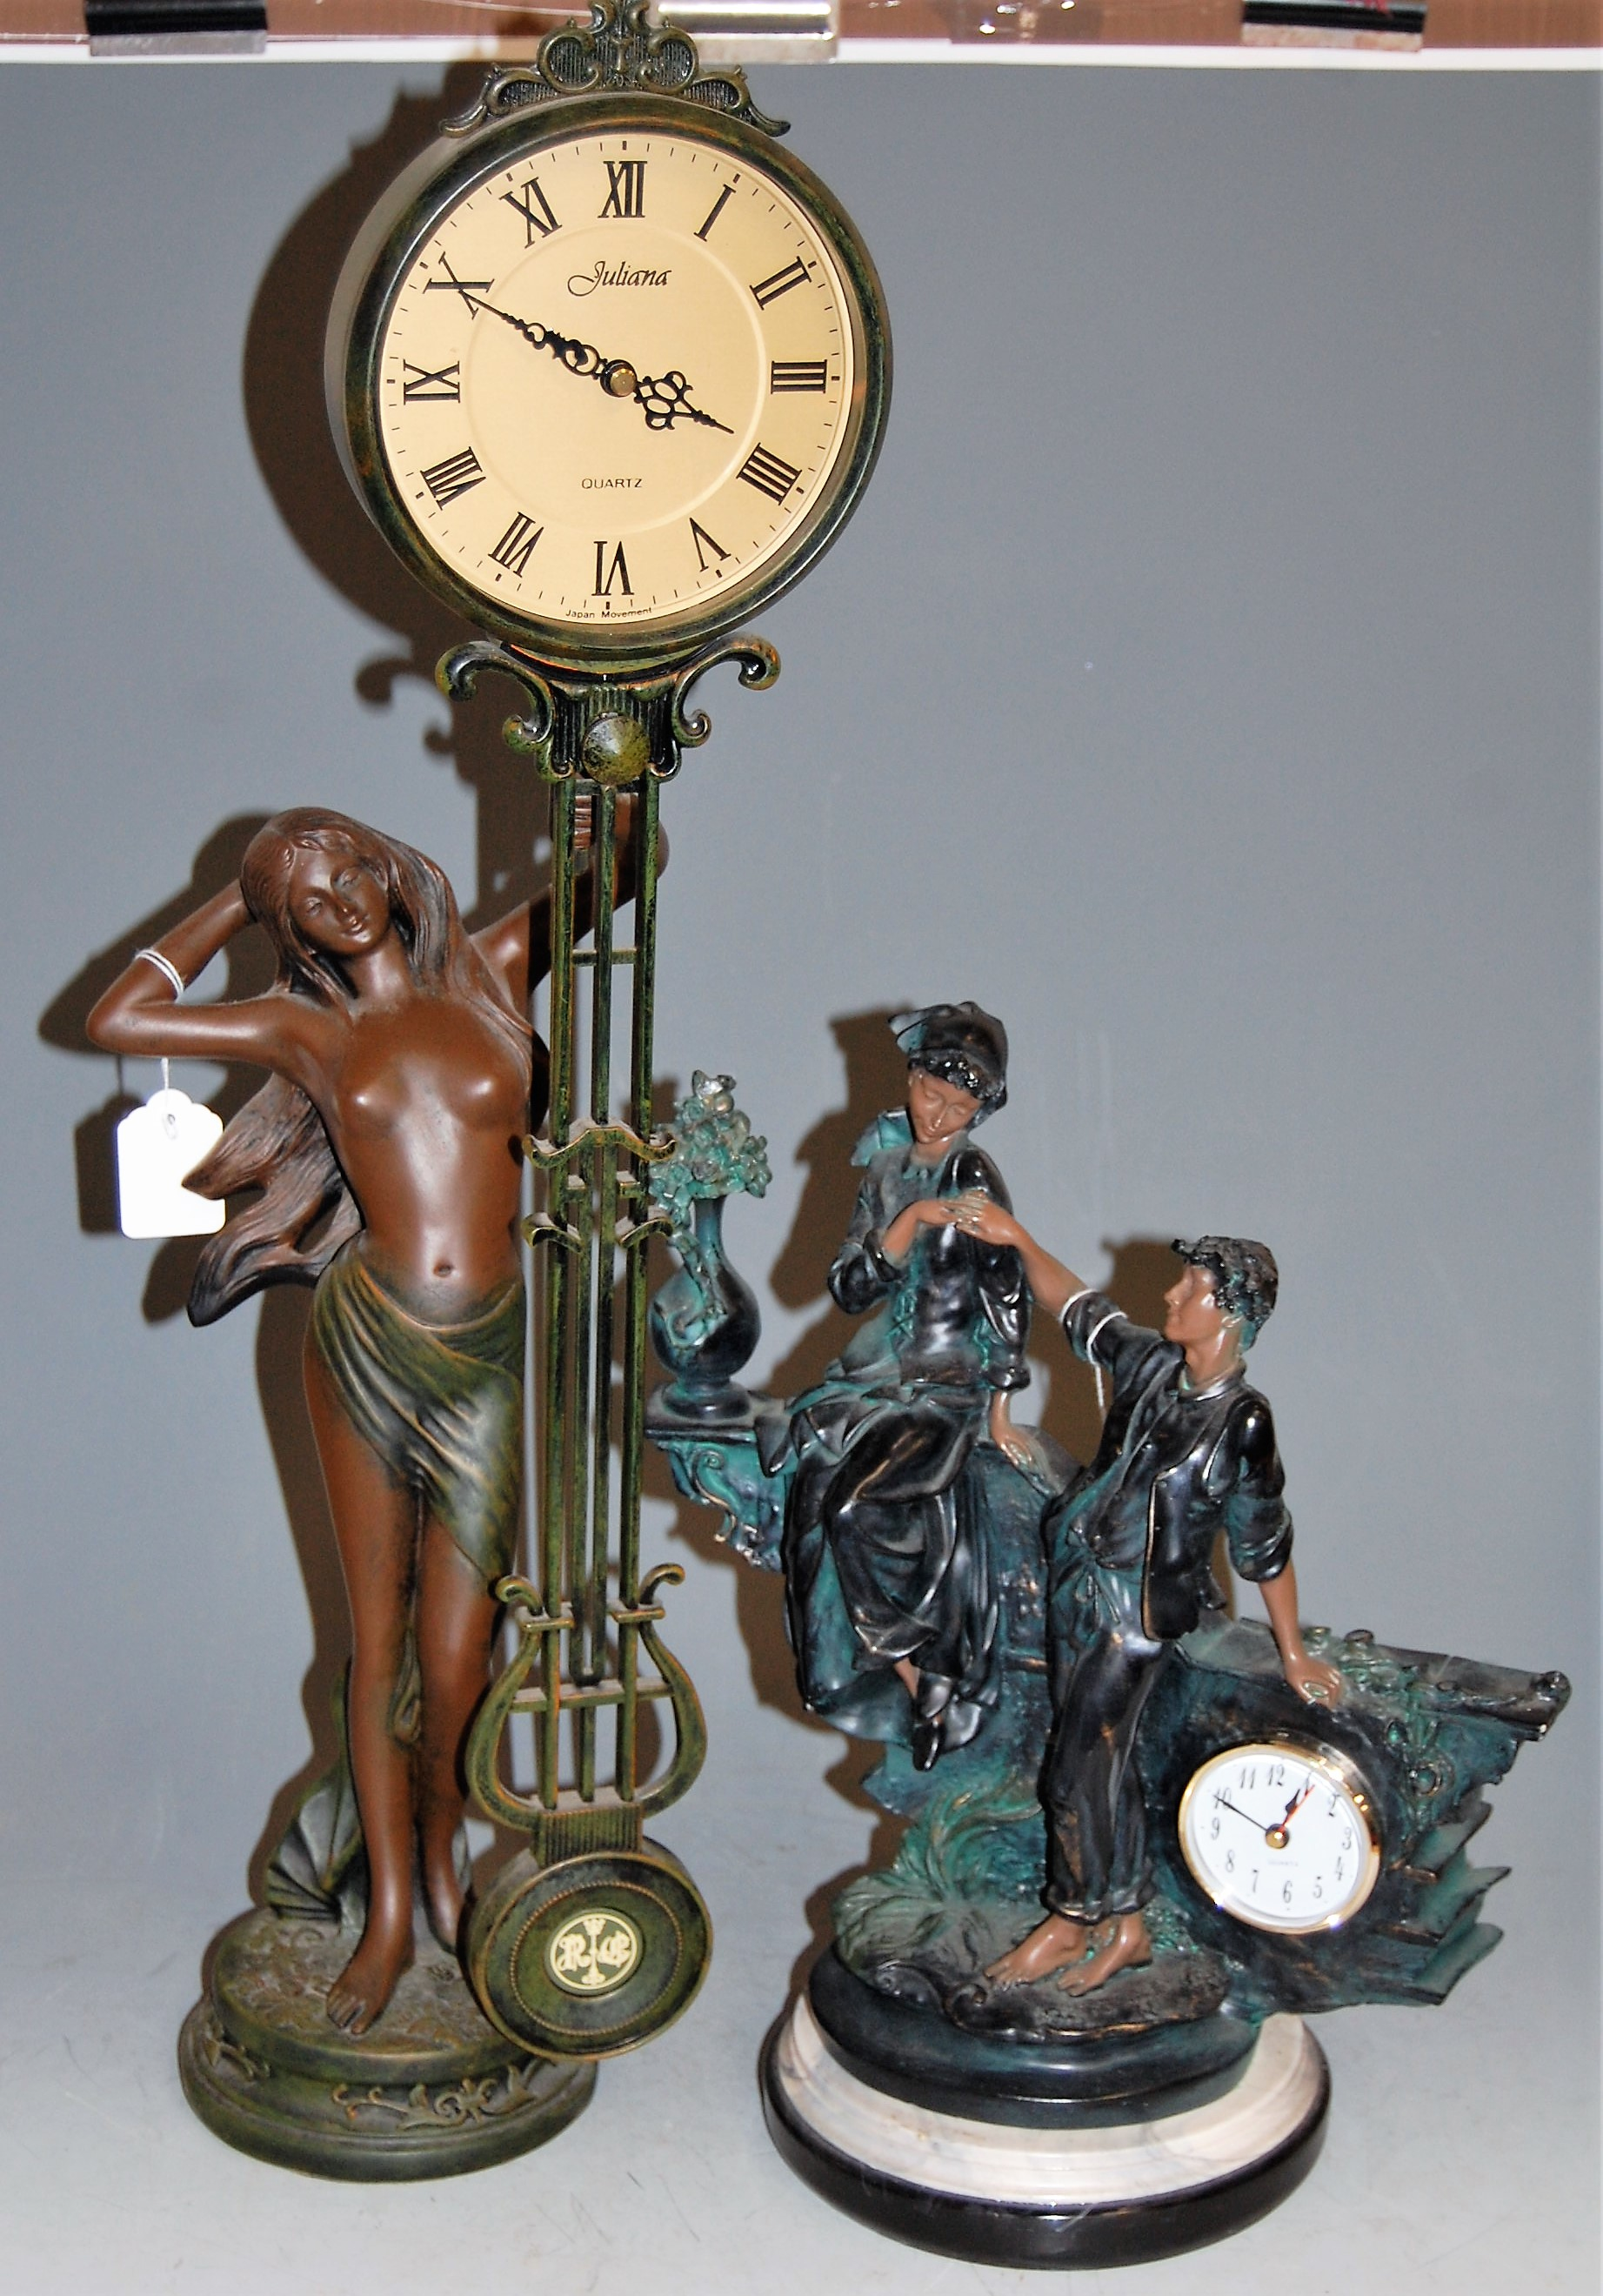 Lot 39 - A reproduction resin figural mantel clock; together with one other Art Nouveau style pendulum